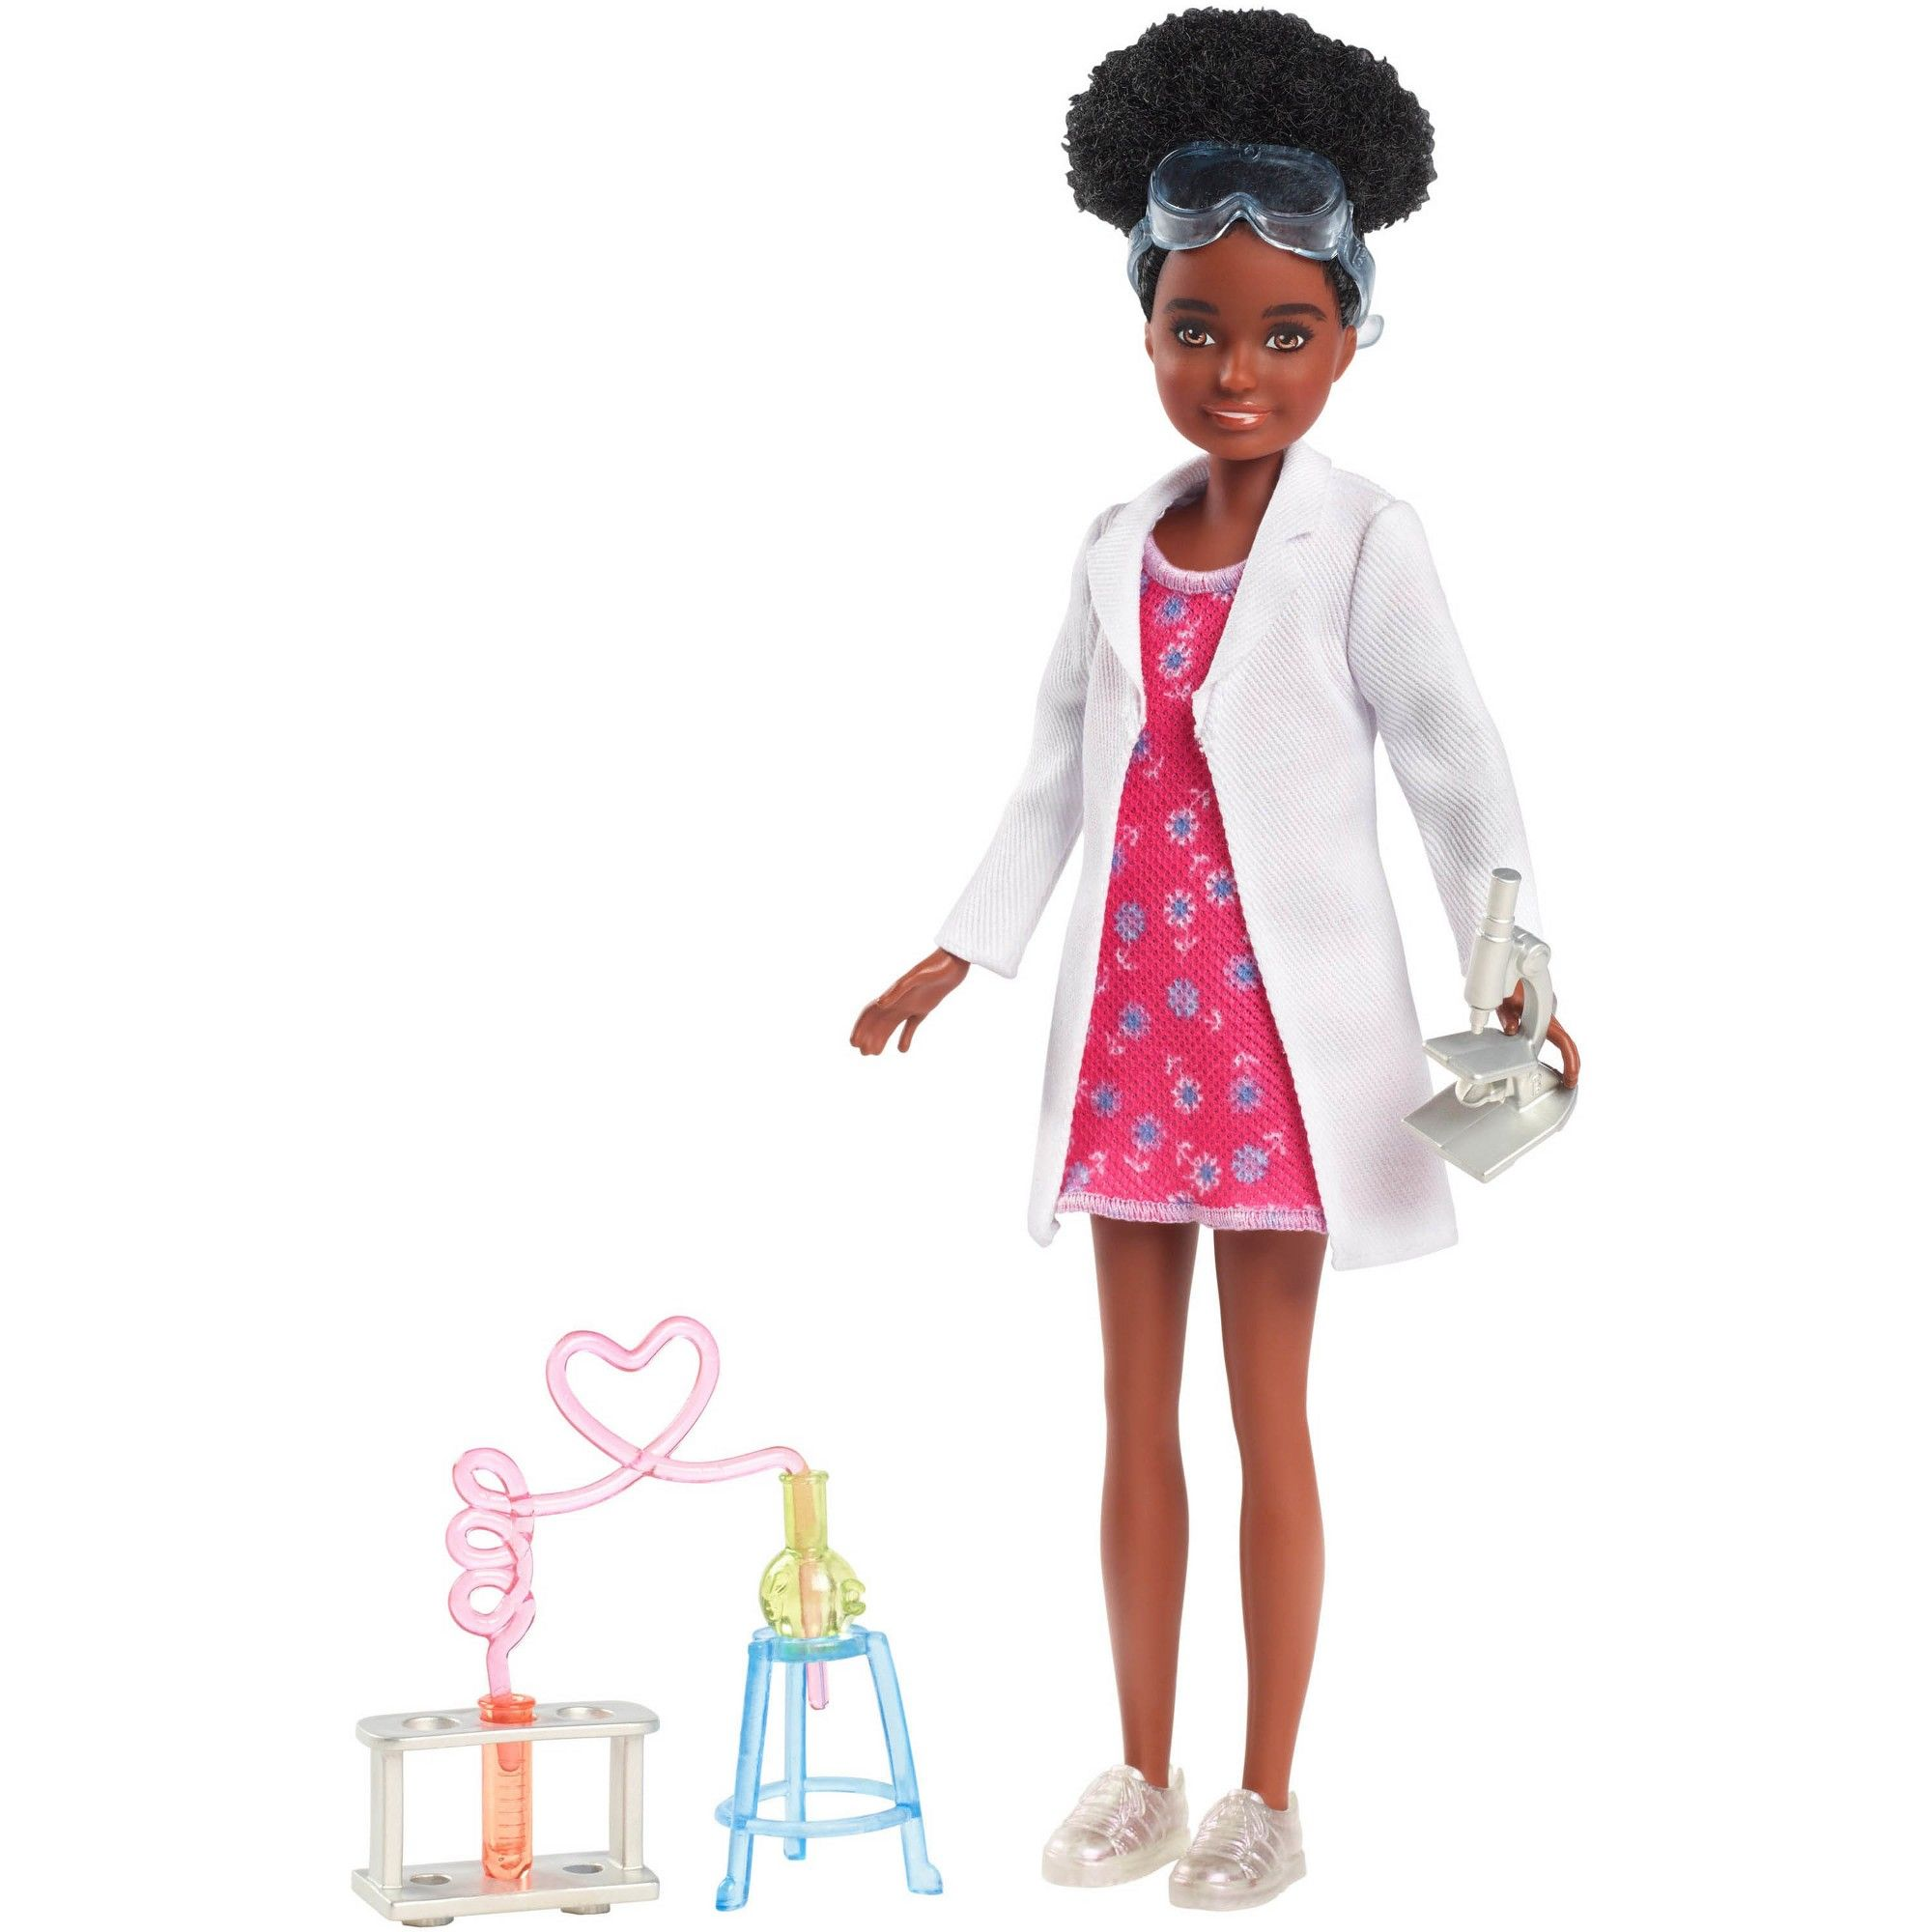 cb871d78147 Barbie Team Stacie Friend of Stacie Doll Science Playset with Accessories